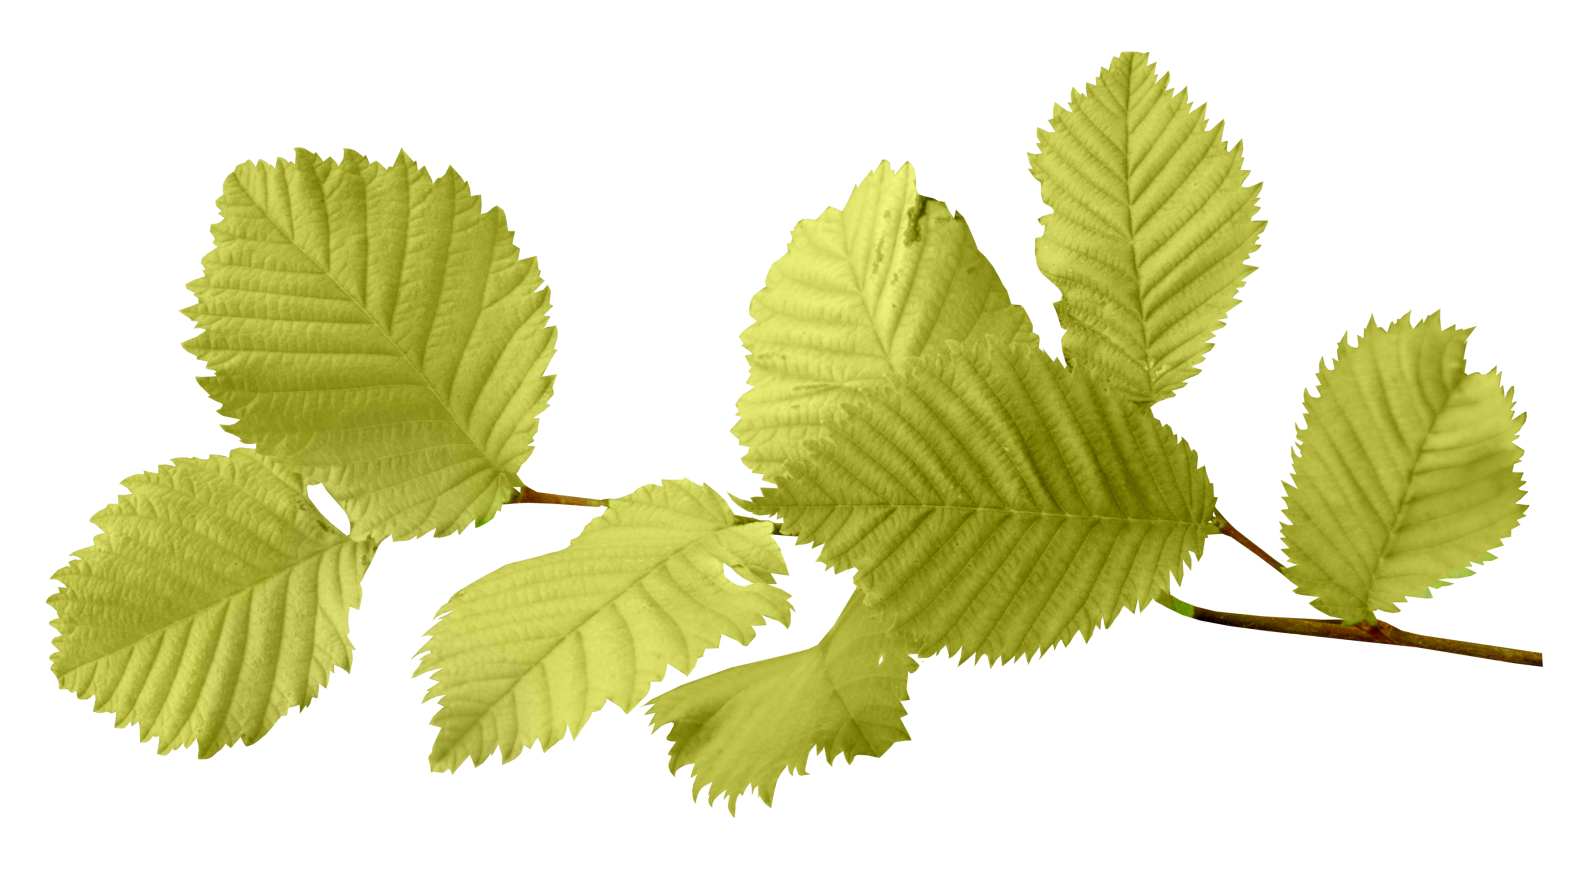 Branch leaves png. Autumn image purepng free